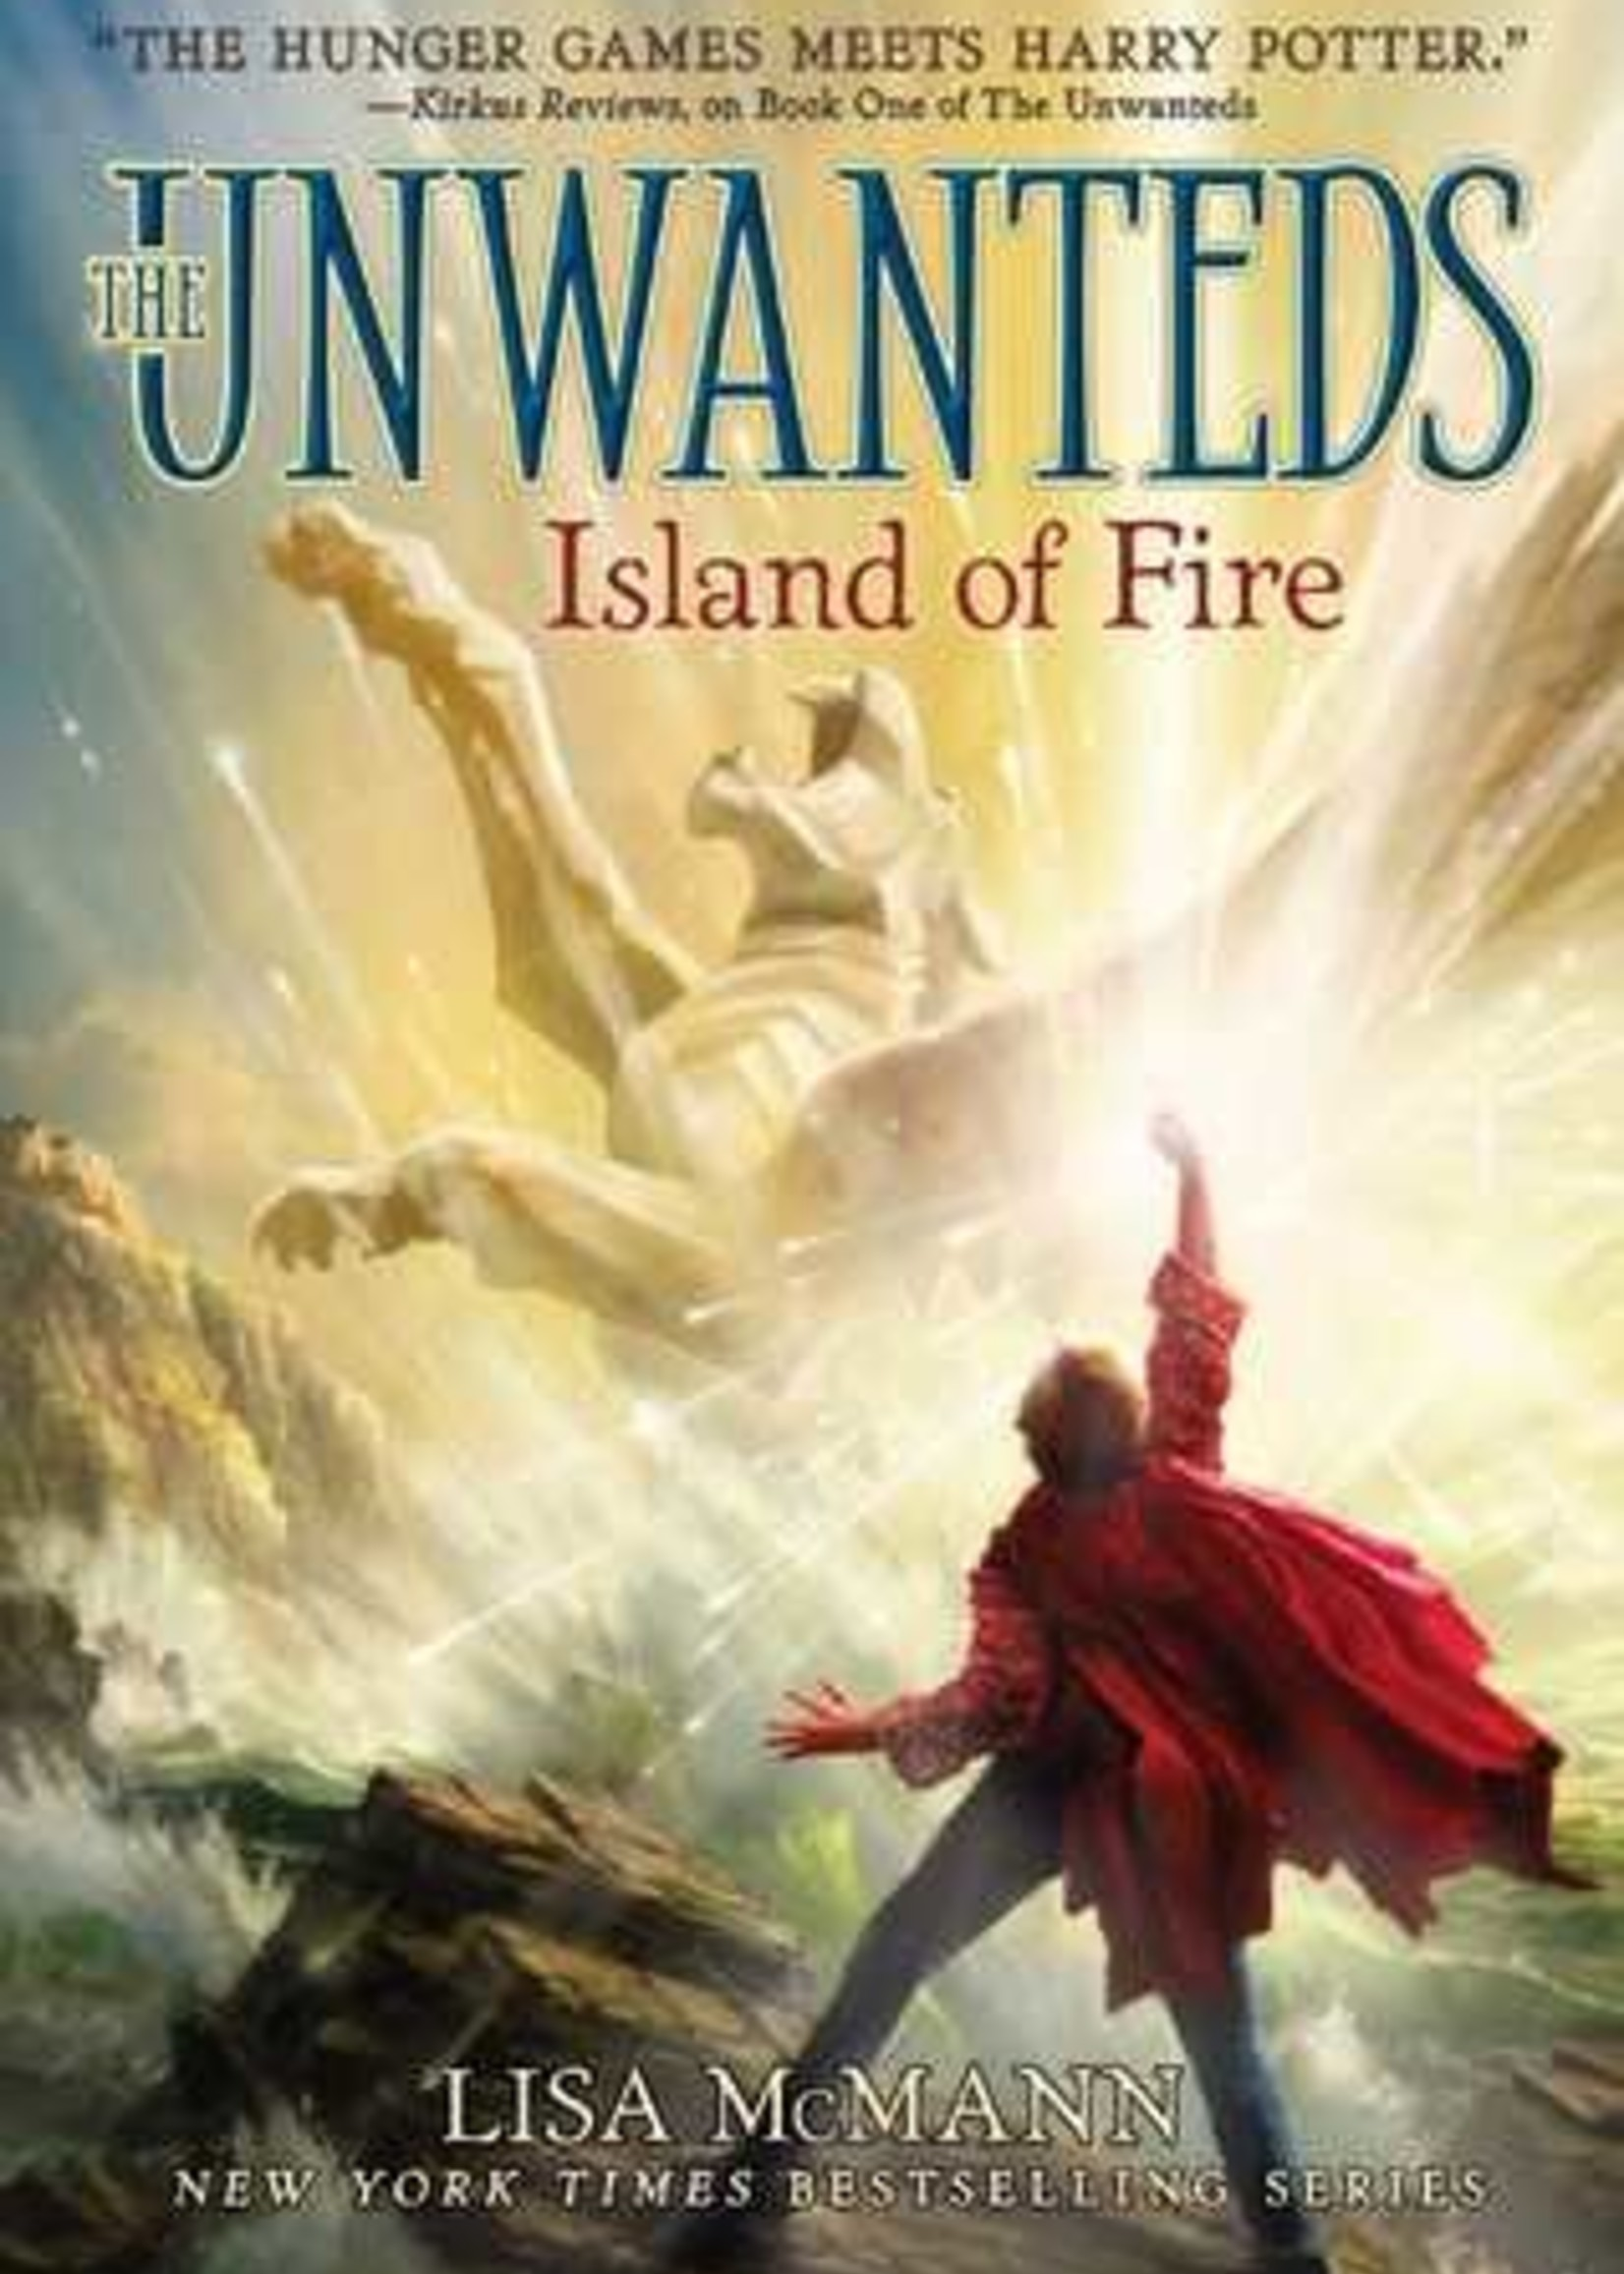 Island of Fire (Unwanteds #3) by Lisa McMann